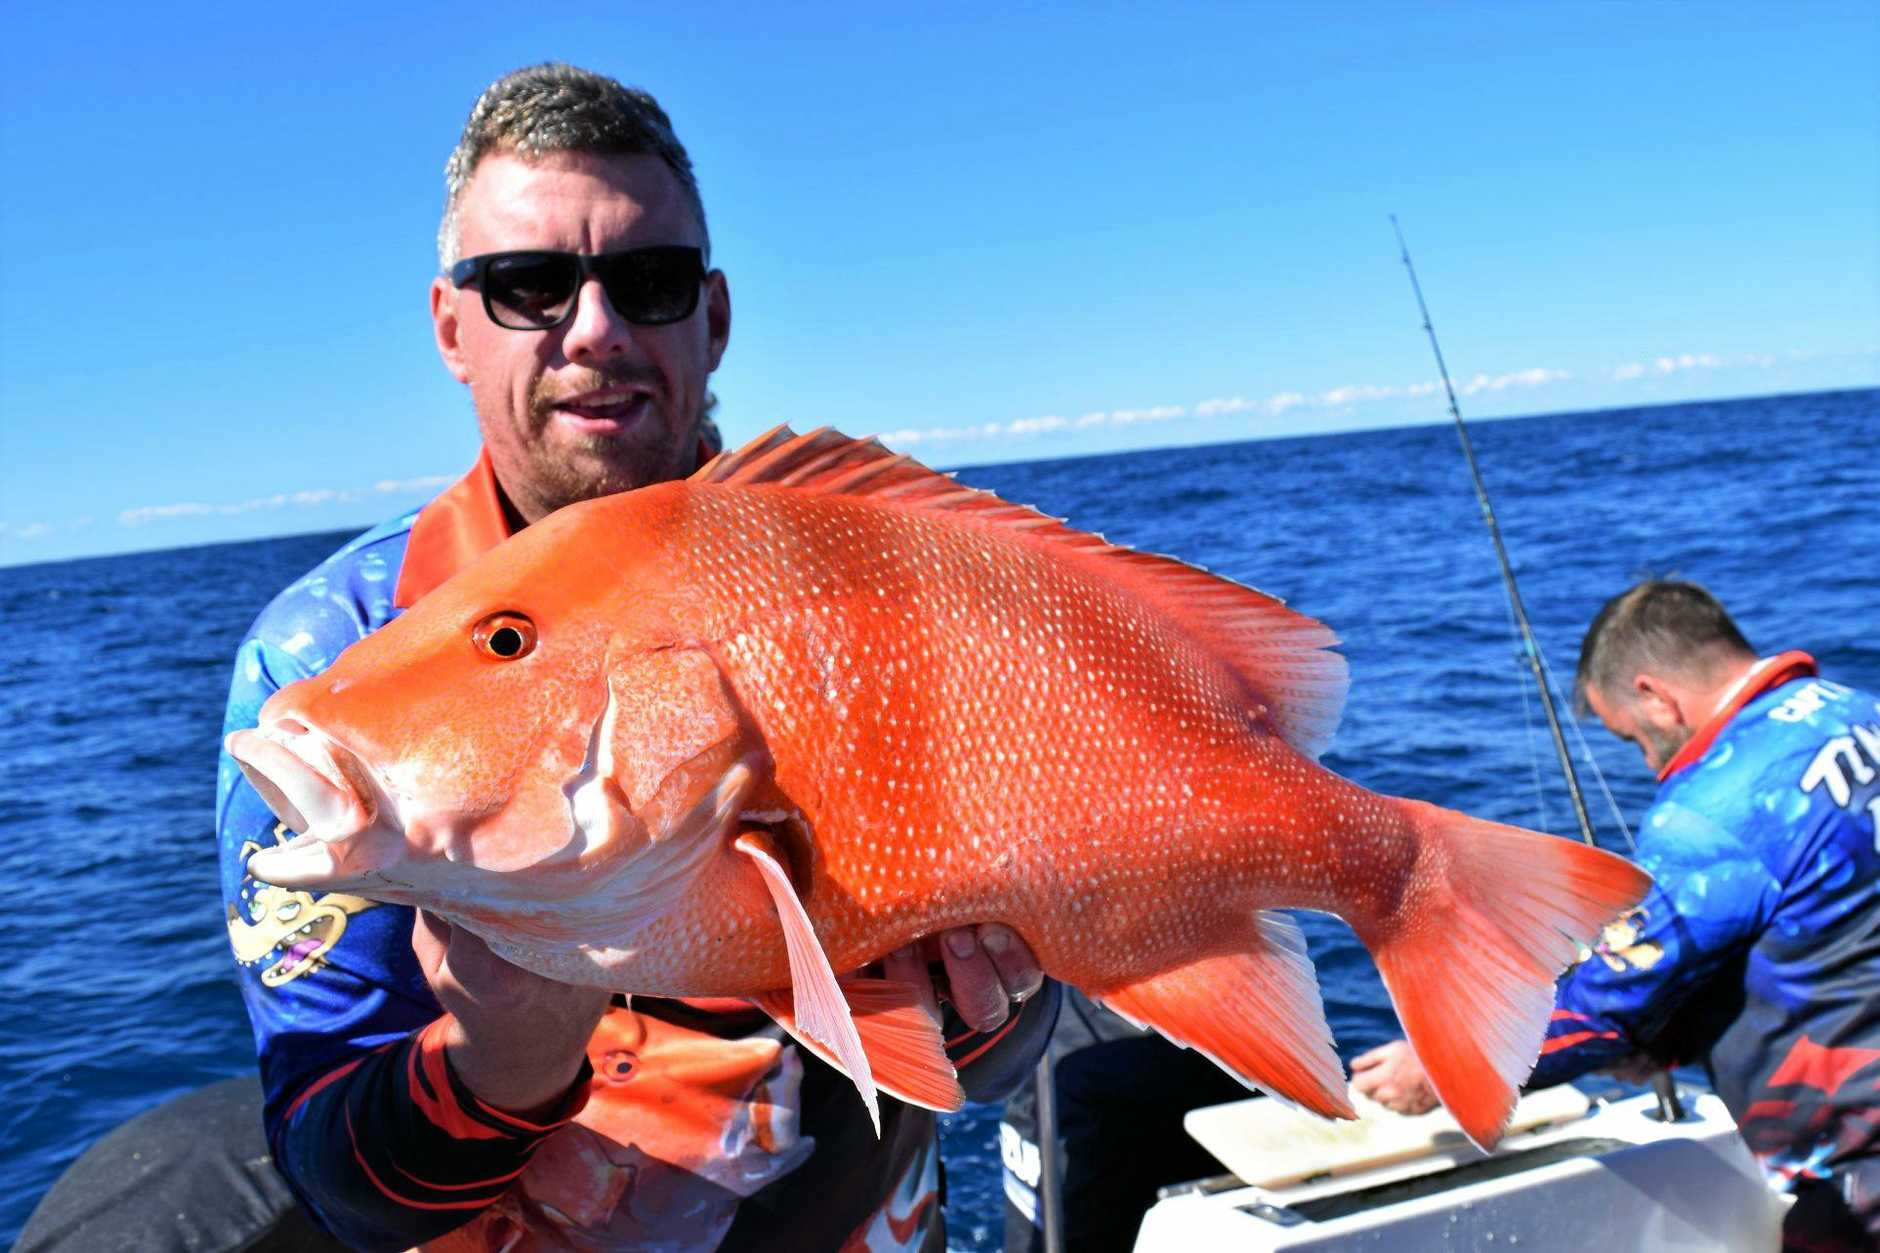 The Crews on Rainbow Escape Charters fished the reefs off Double Island with a nice red emperor taken last weekend.